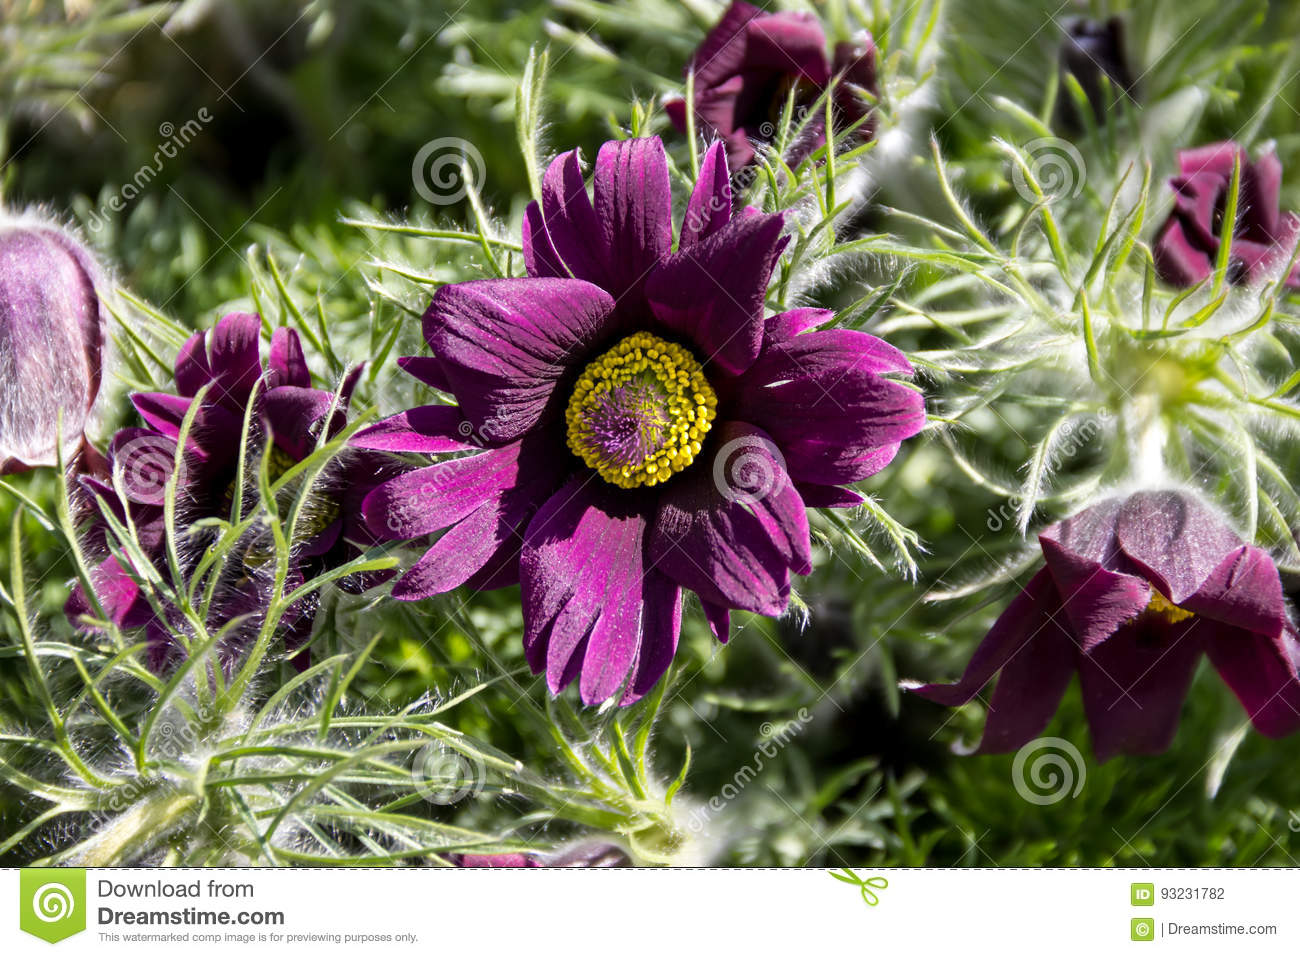 Purple flower with a yellow center and sharp narrow leaves in the download comp mightylinksfo